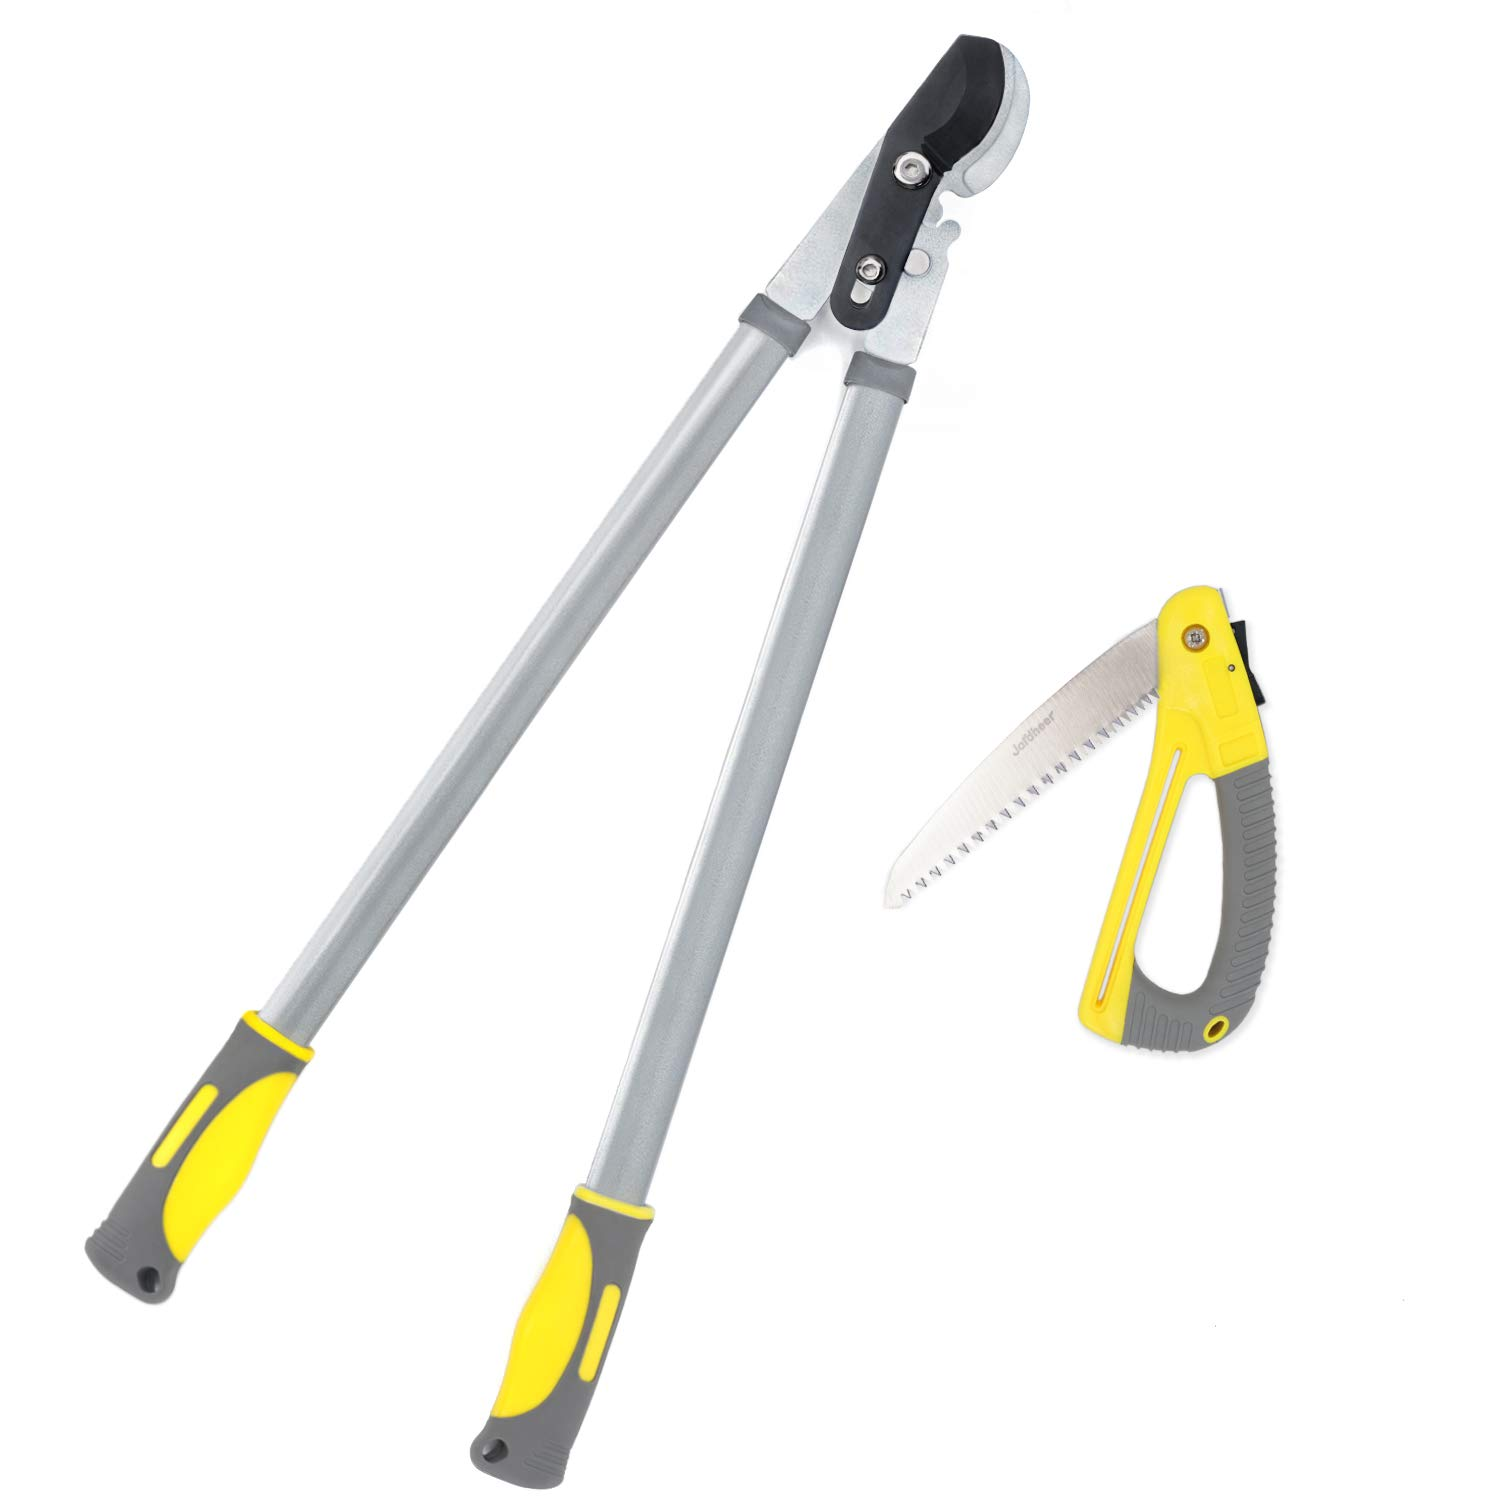 Jardineer 2PC Garden Tools-30.2'' Heavy Duty Garden Loppers & 15.5'' Safety Pruning Saw. Sharp Cut Garden Loppers Set for Pruning,Trimming and Outdoors. 1 Year Warranty